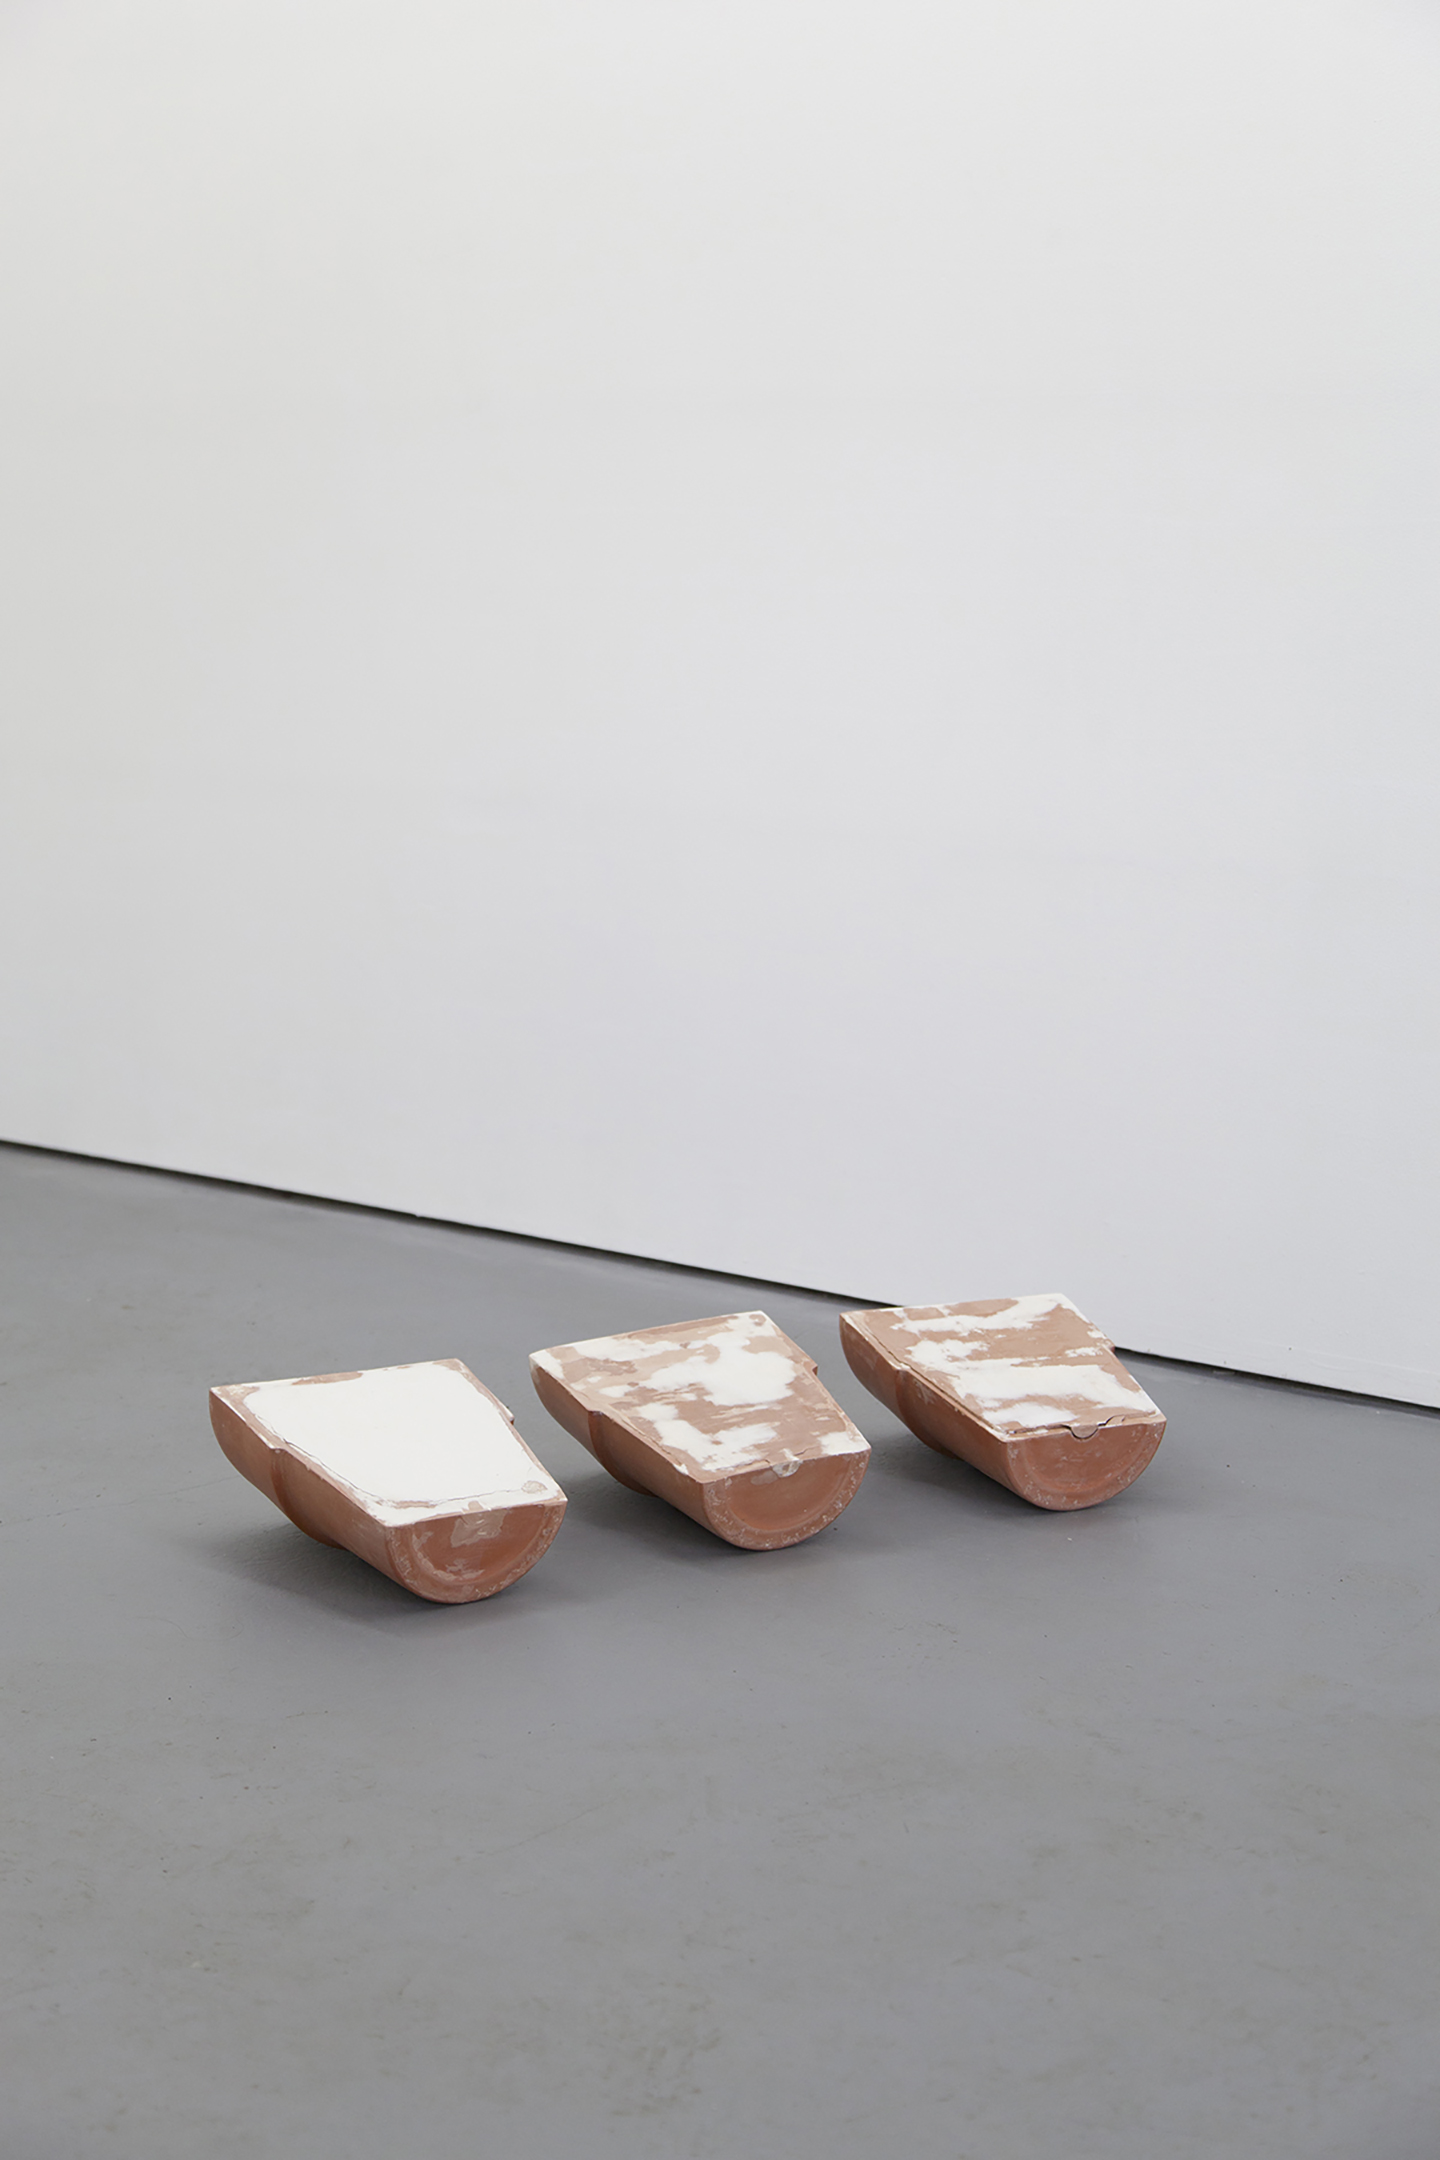 three halves make three halves of no hole, 2016, terracotta, plaster.